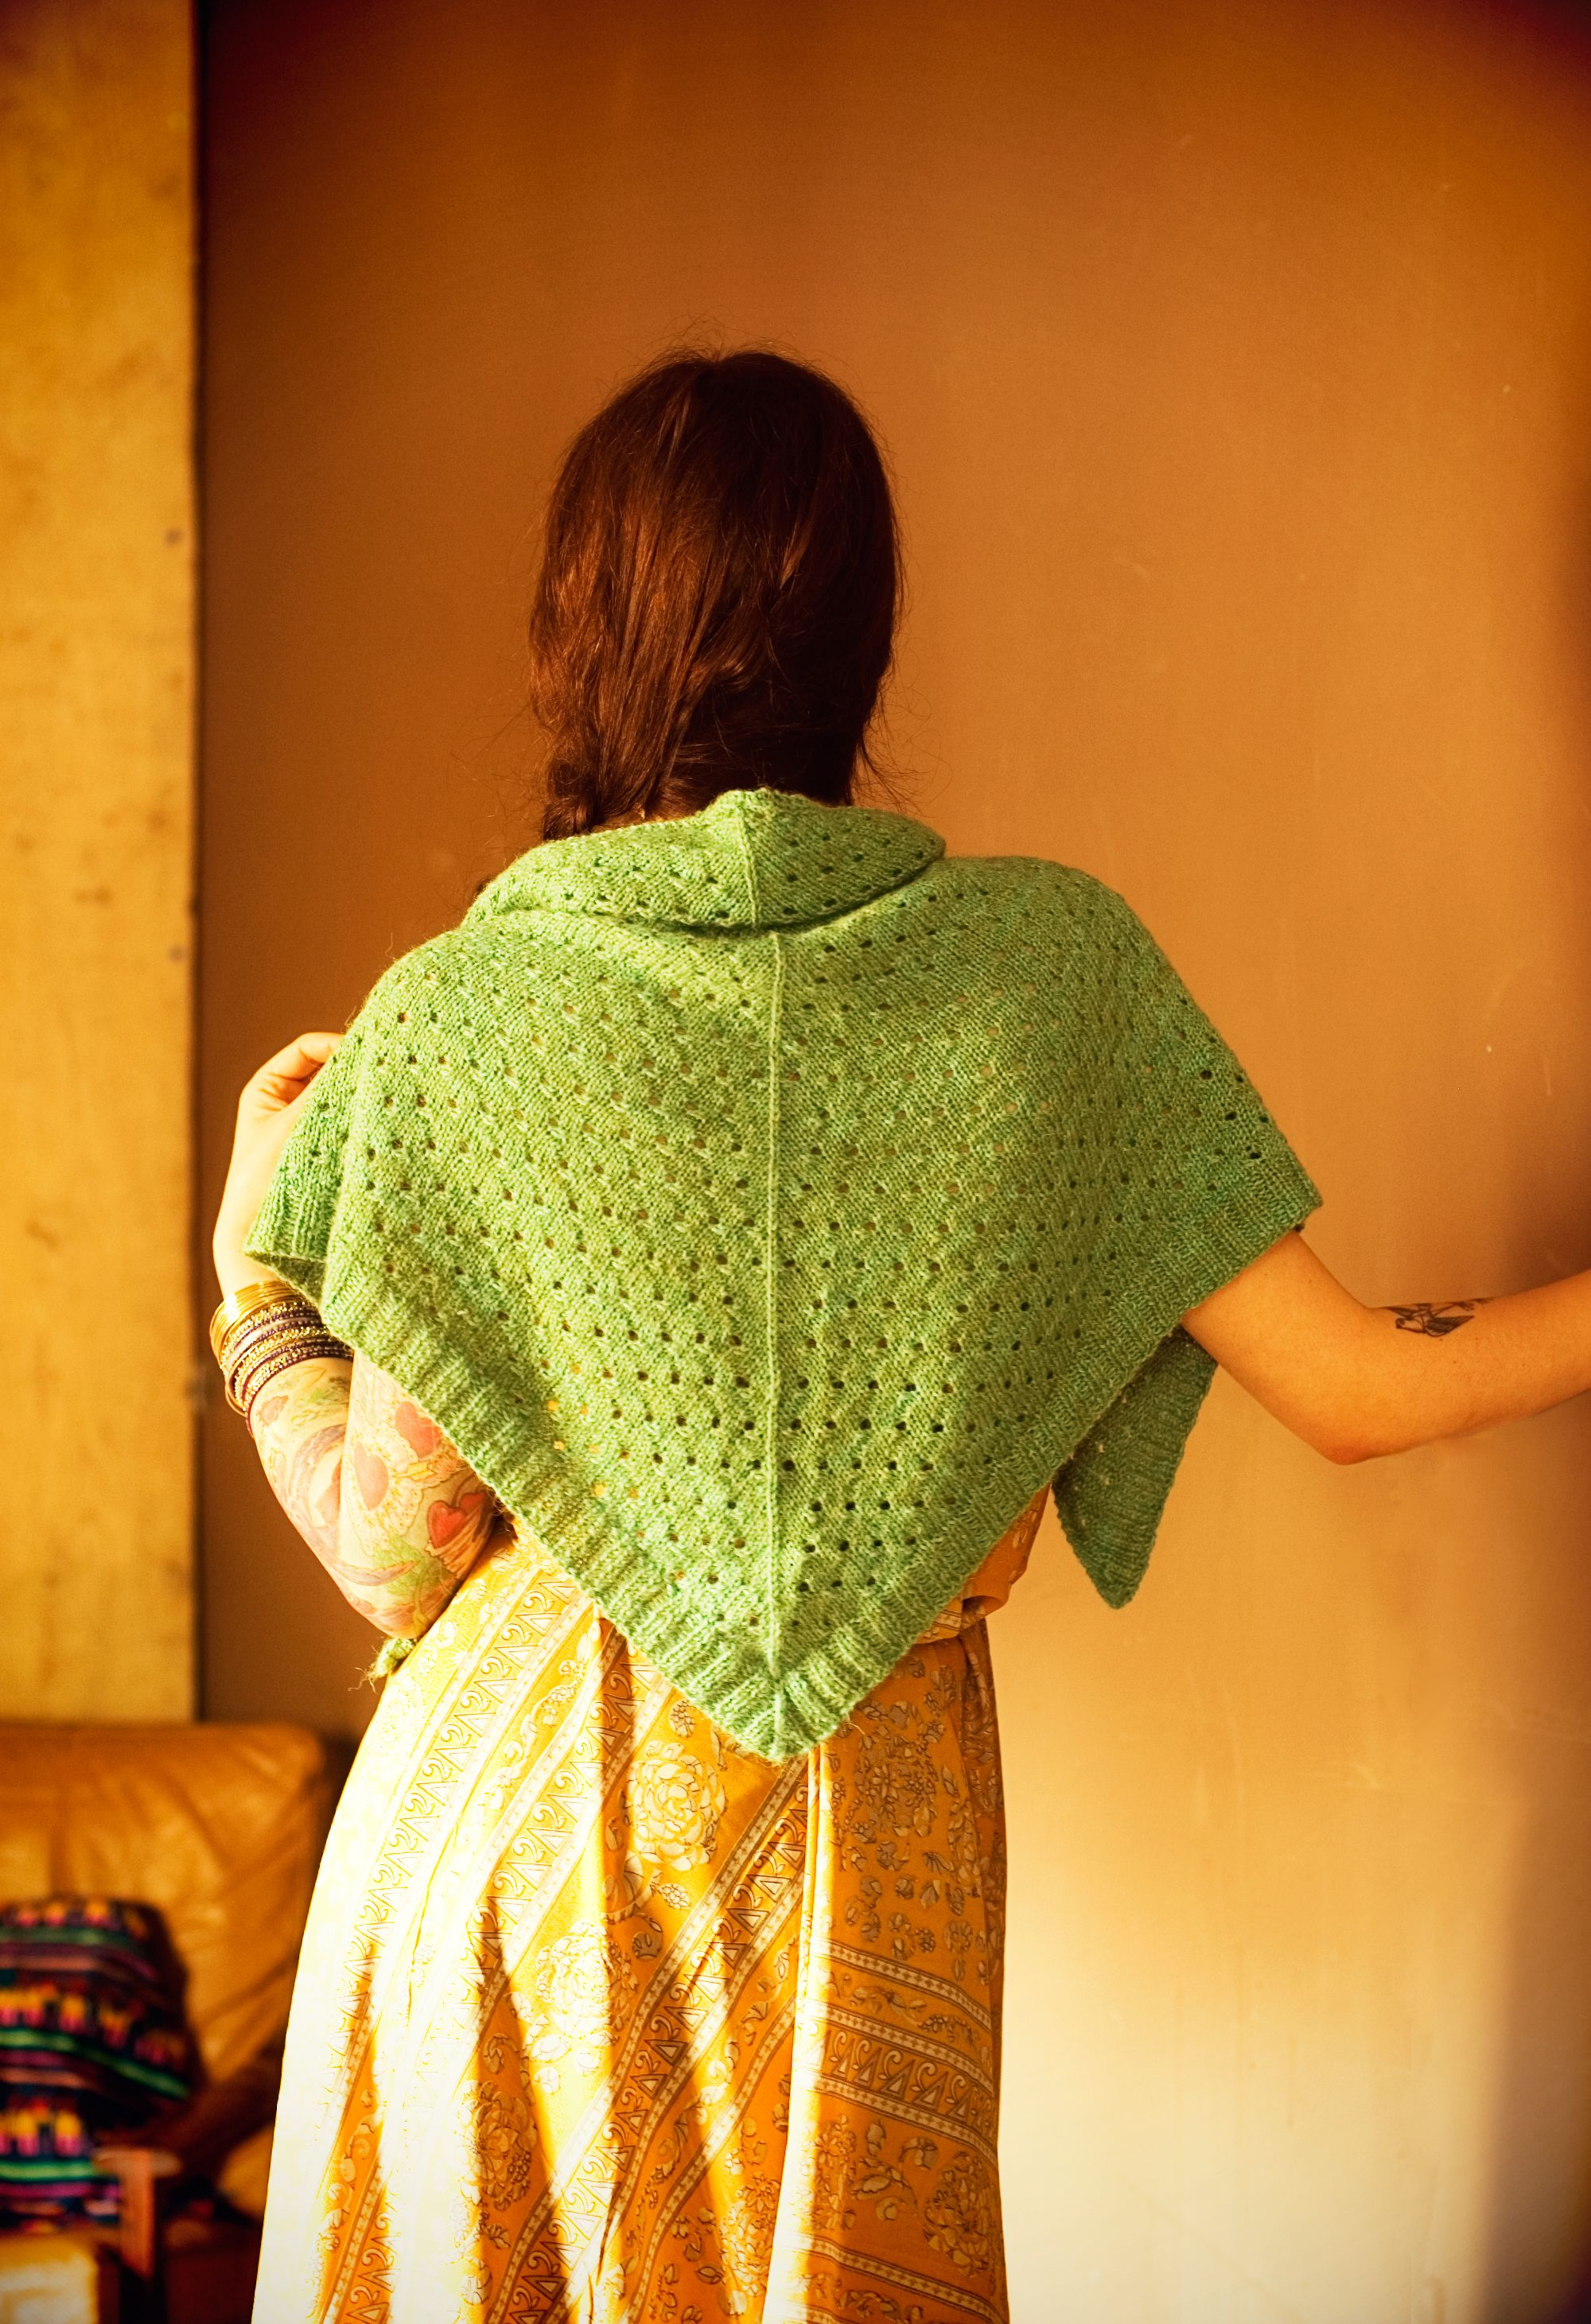 Campfire shawl campfires shawl and free pattern campfire shawl shawl patternsknitting bankloansurffo Image collections